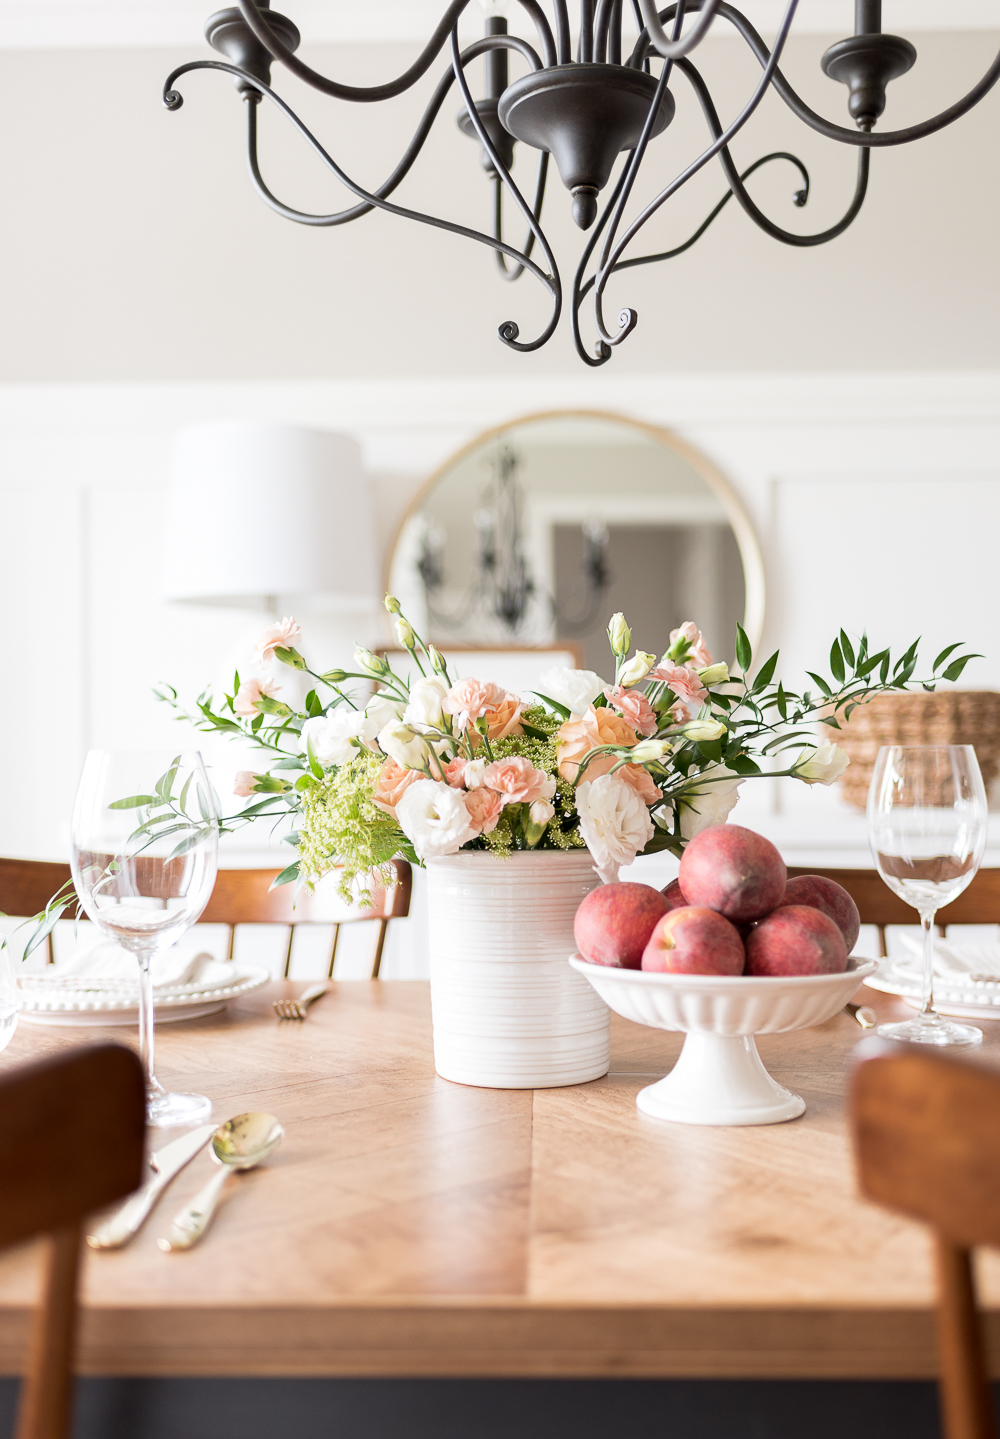 Fresh flowers in soft peach, blush and cream hues paired with a bowl of juicy peaches make an effortless centerpiece for a simple summer gathering.